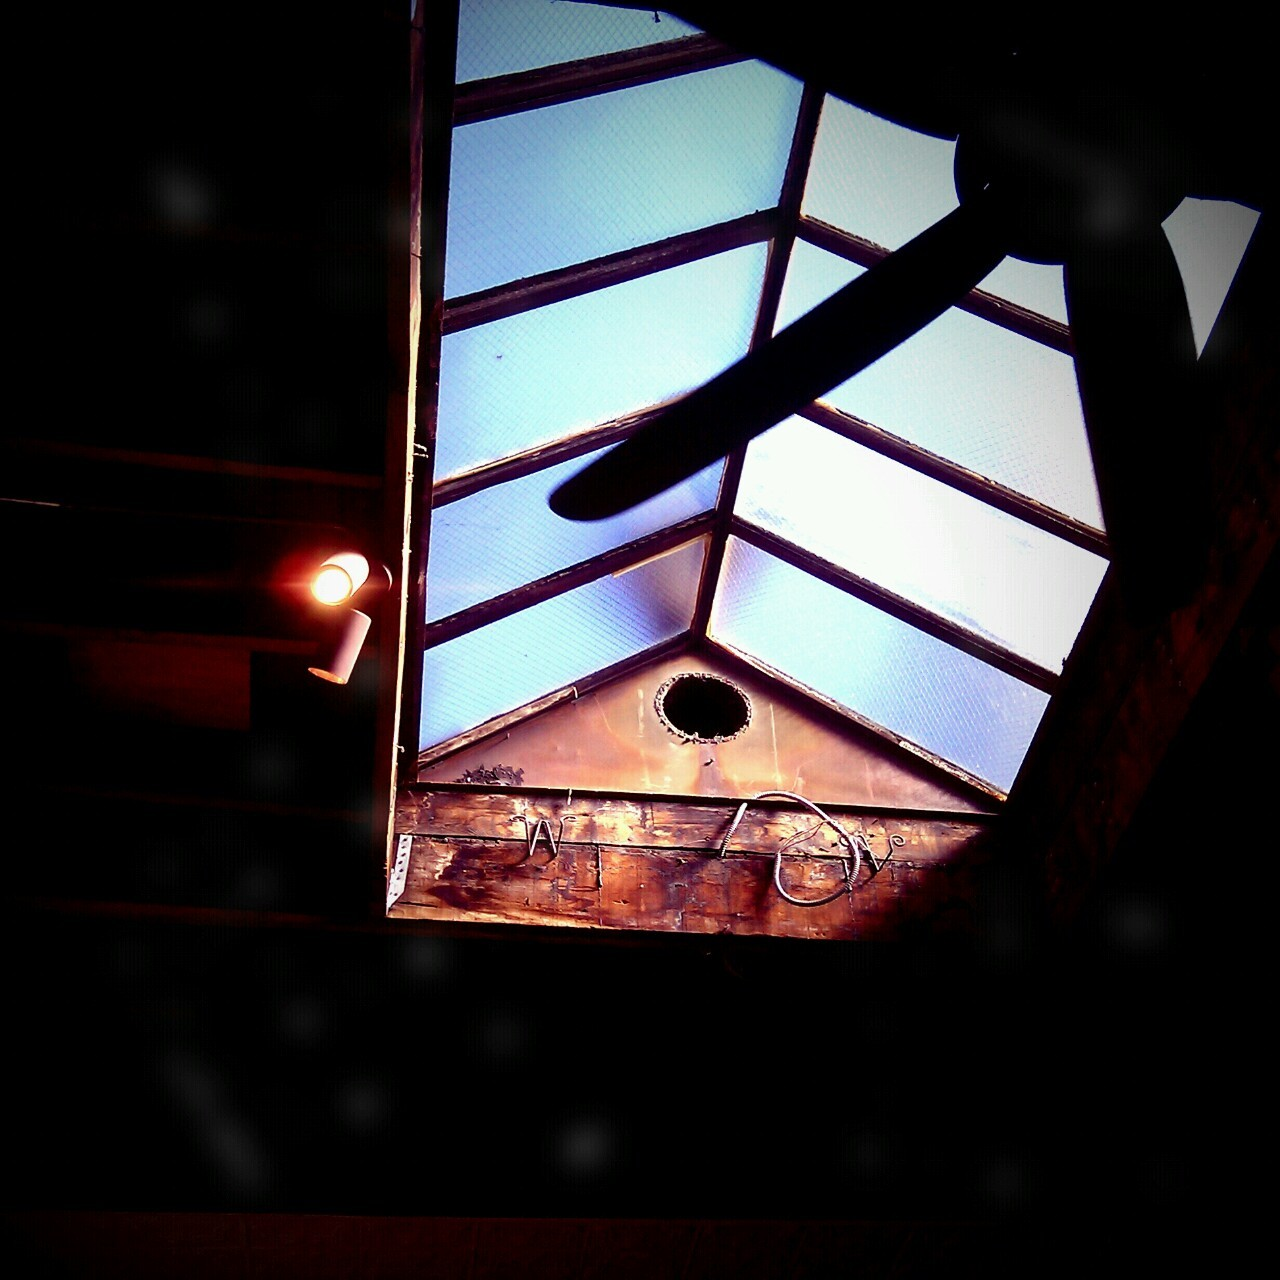 #Skylight #Love